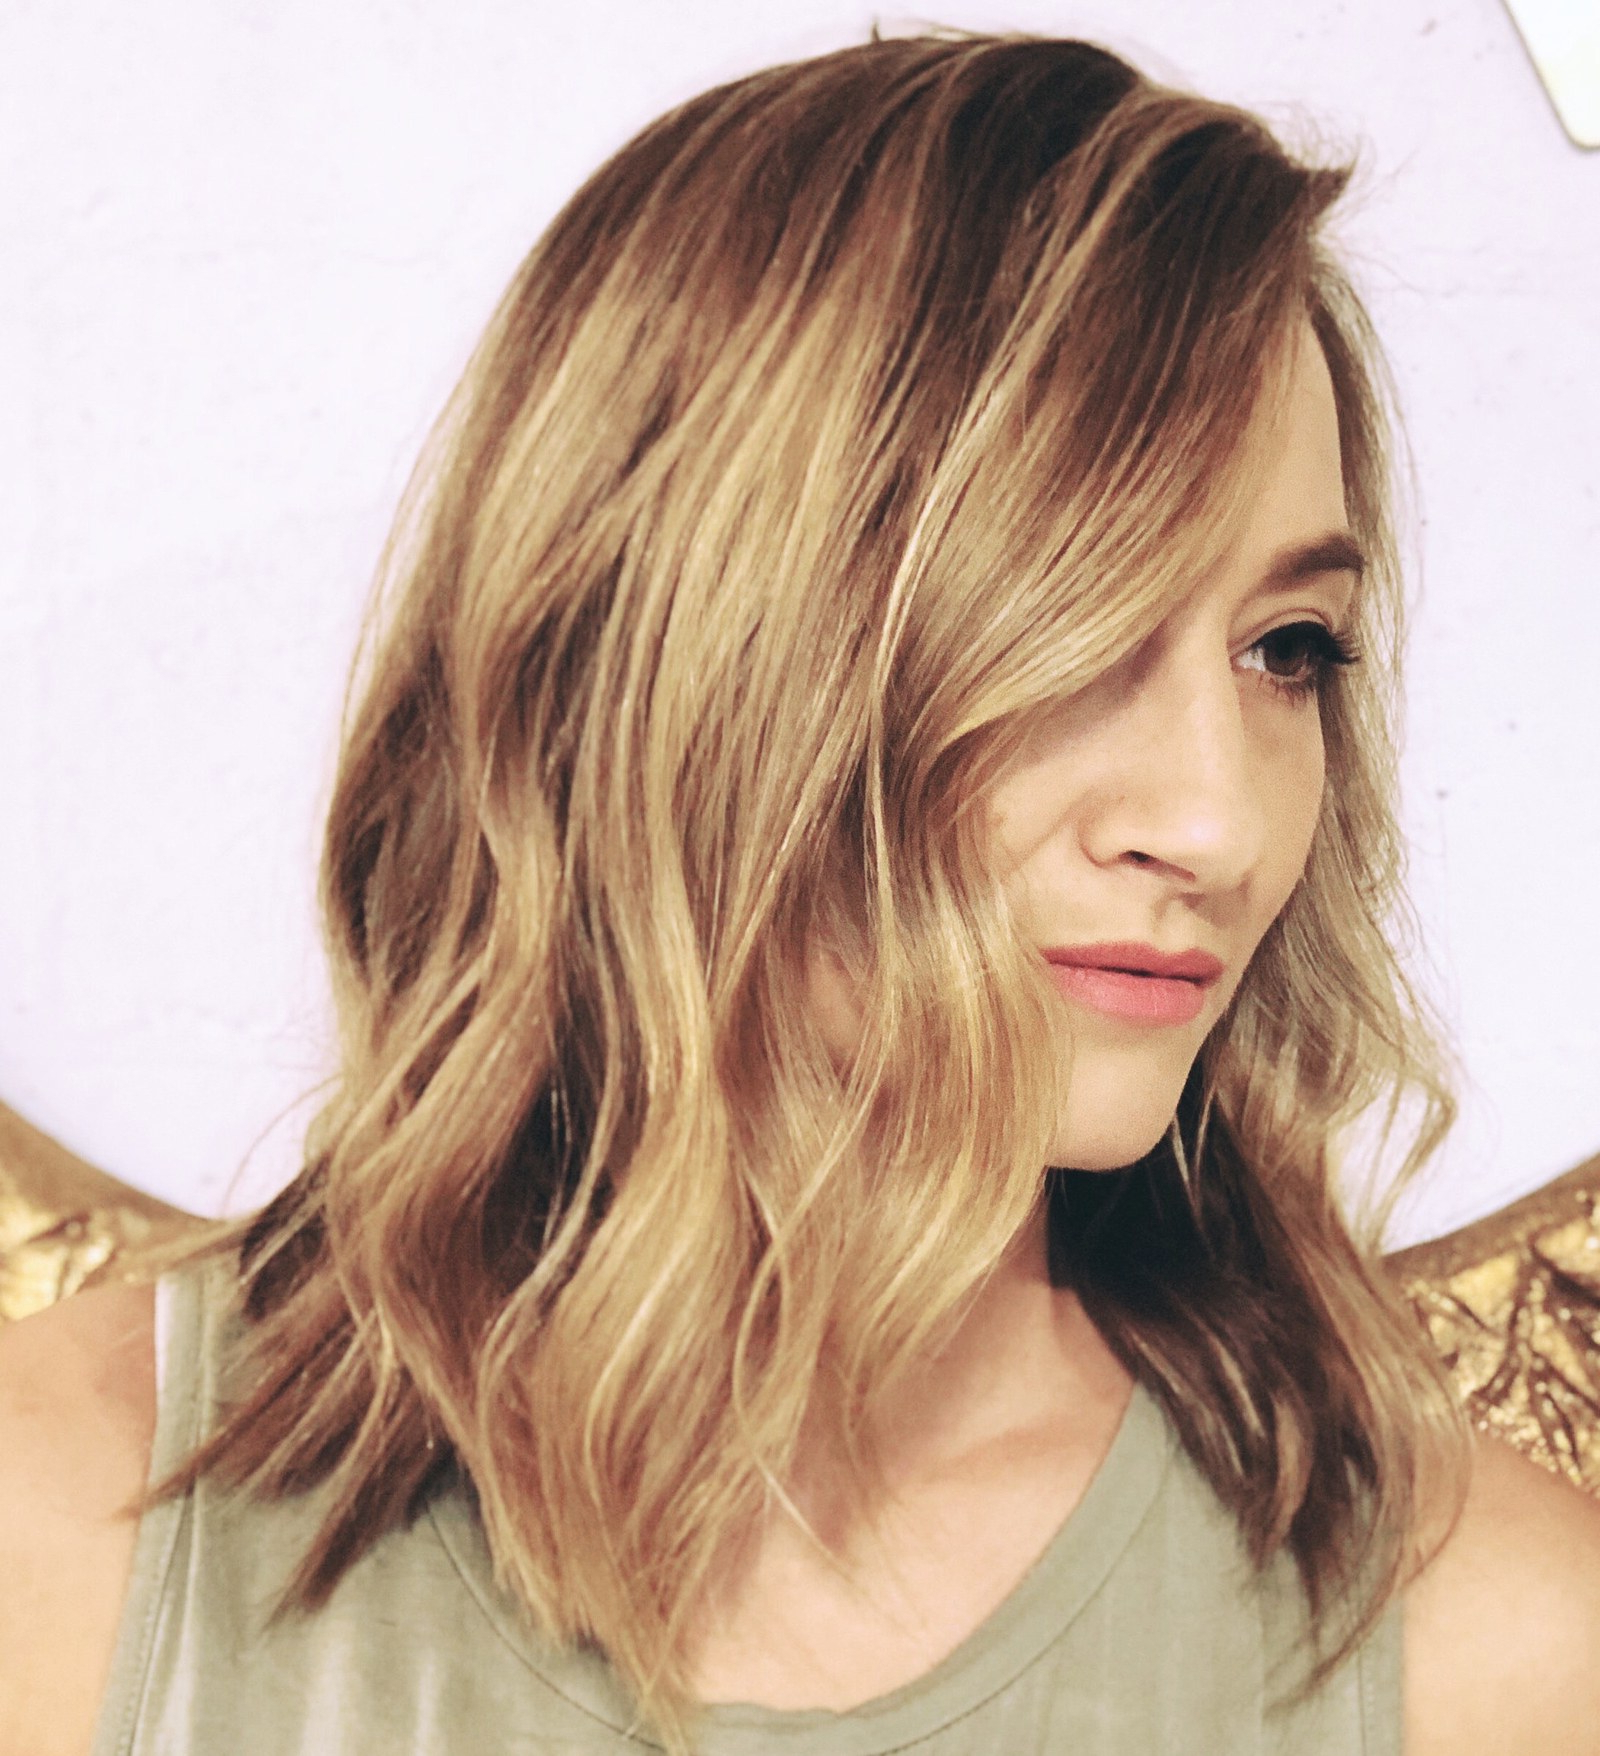 The Most Popular Haircuts For 2018 – Glamour Inside Low Maintenance Short Haircuts For Thick Hair (View 23 of 25)